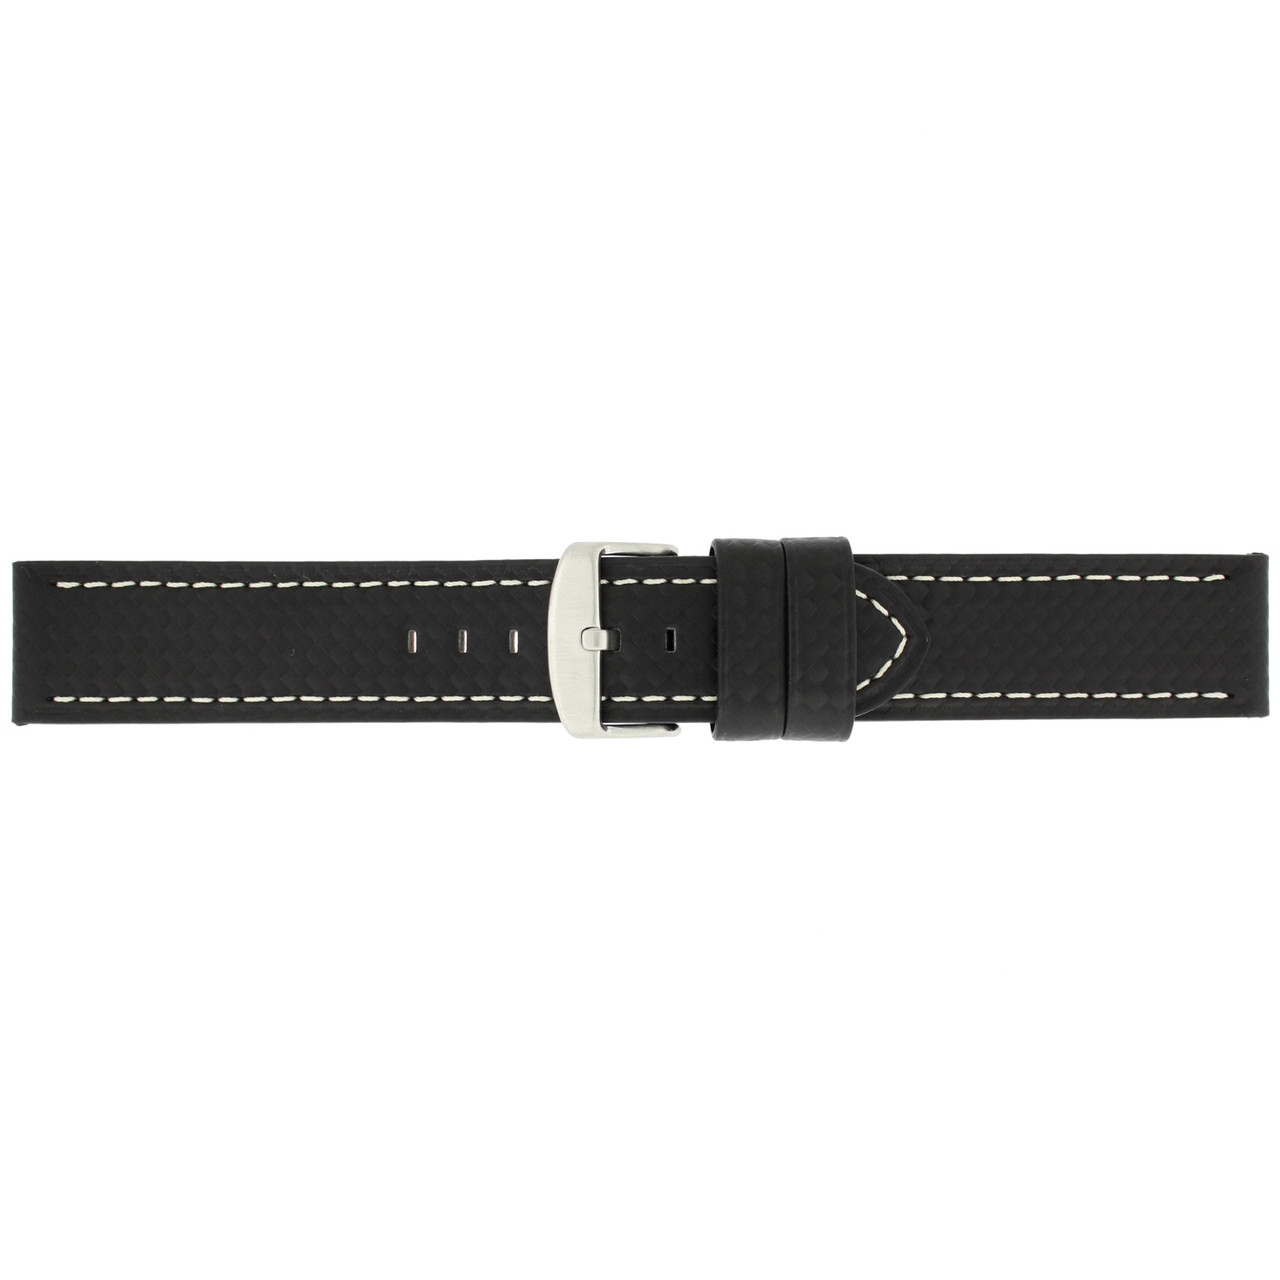 Long Watch Band in Black Carbon Fiber Print - Buckle View